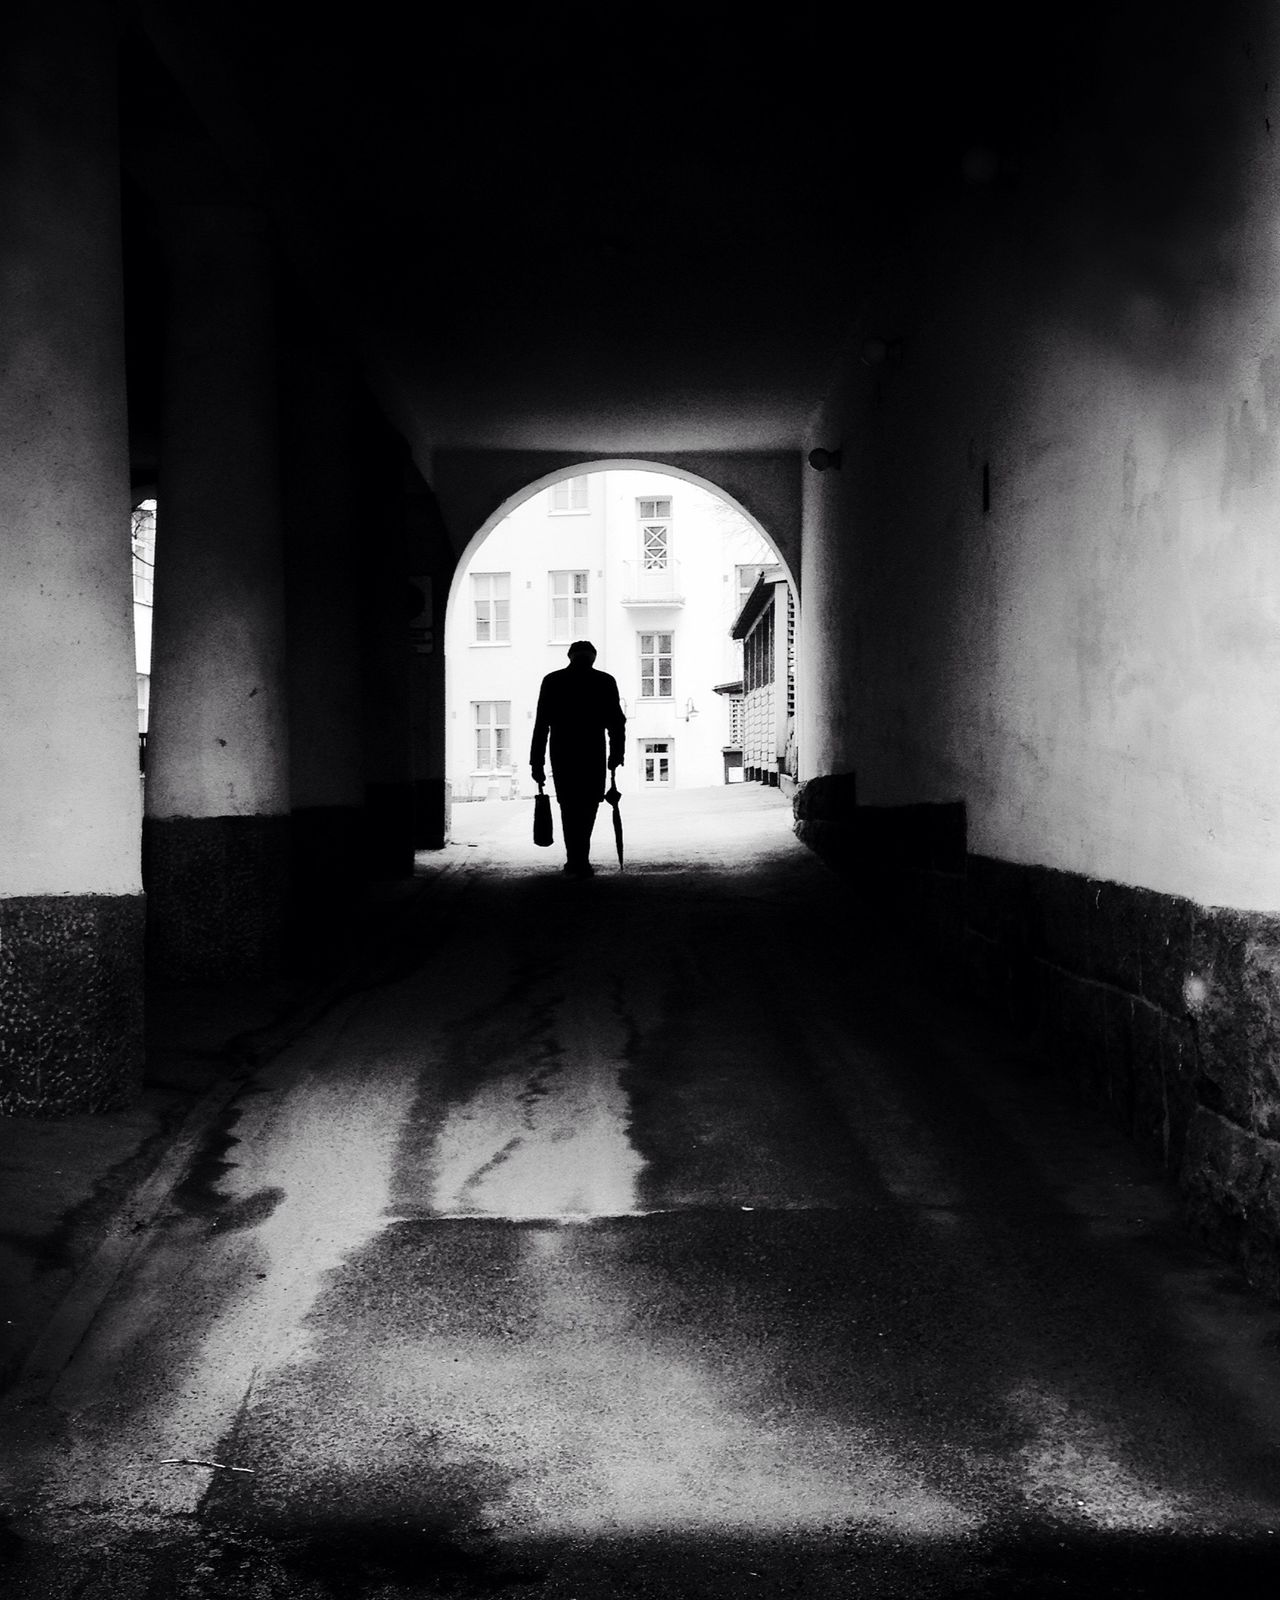 Alone The Street Photographer - 2016 EyeEm Awards Blackandwhite AMPt_community Streetphotography